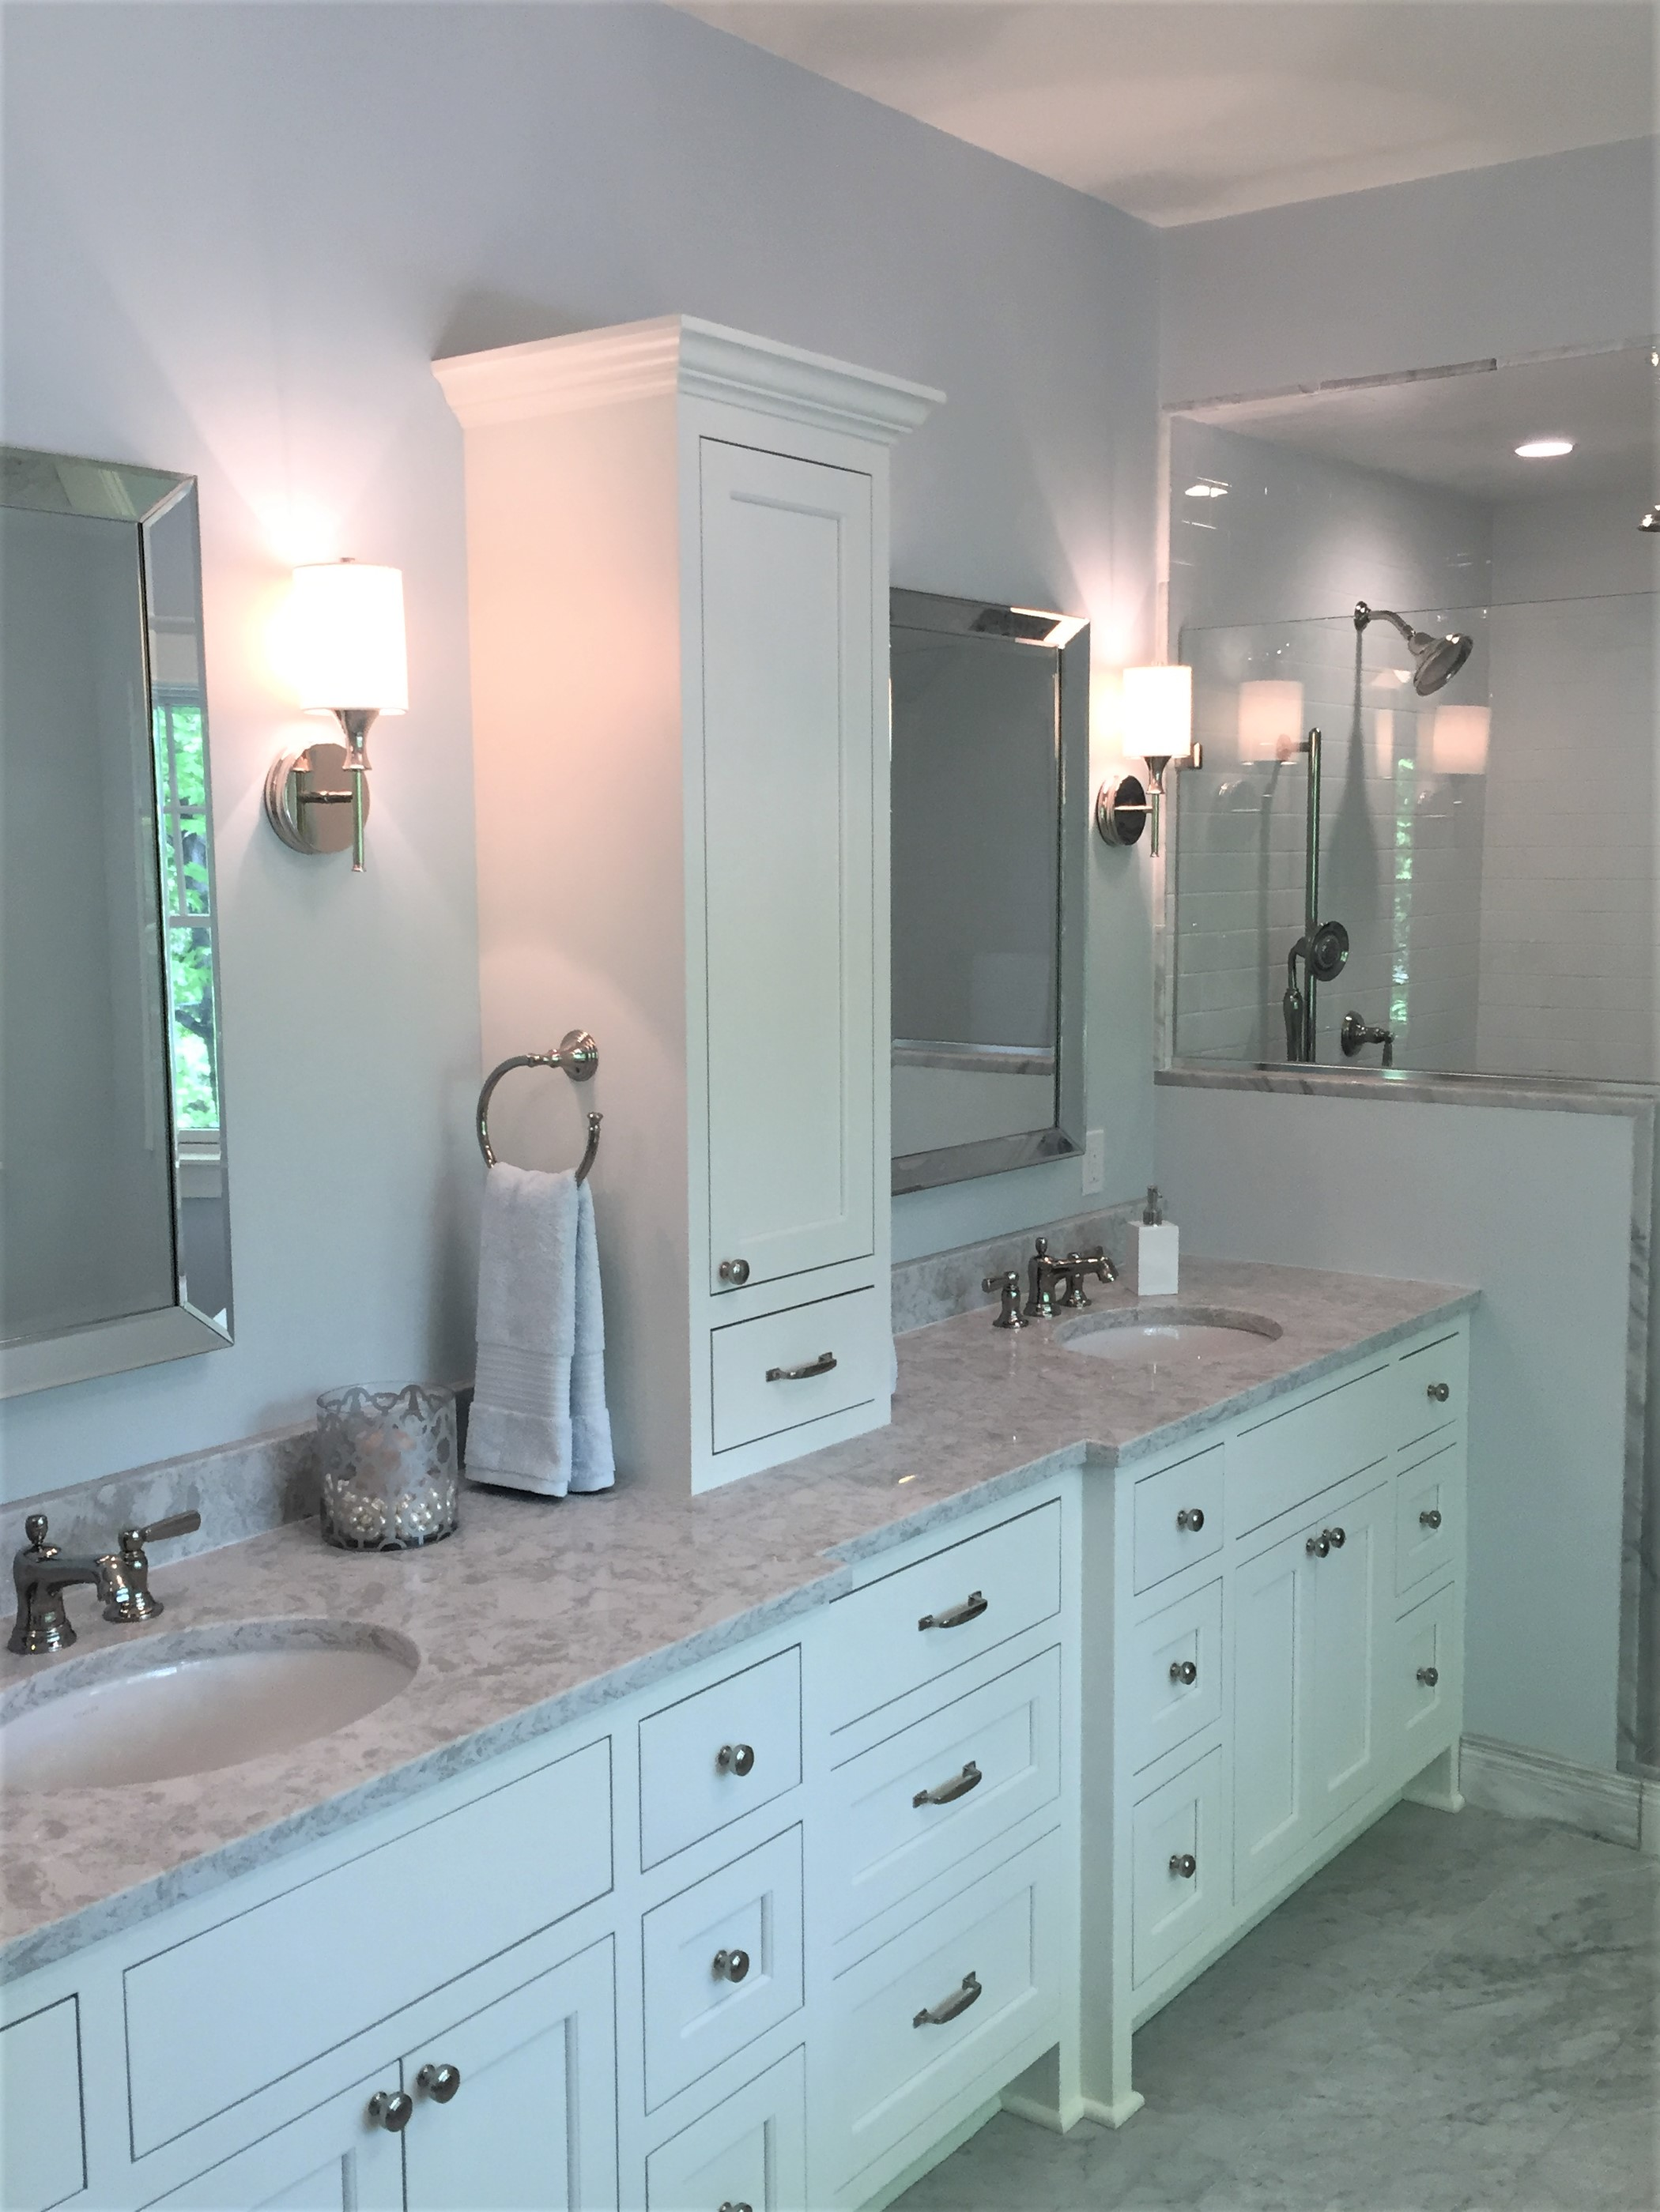 Picture of sink in master bathroom